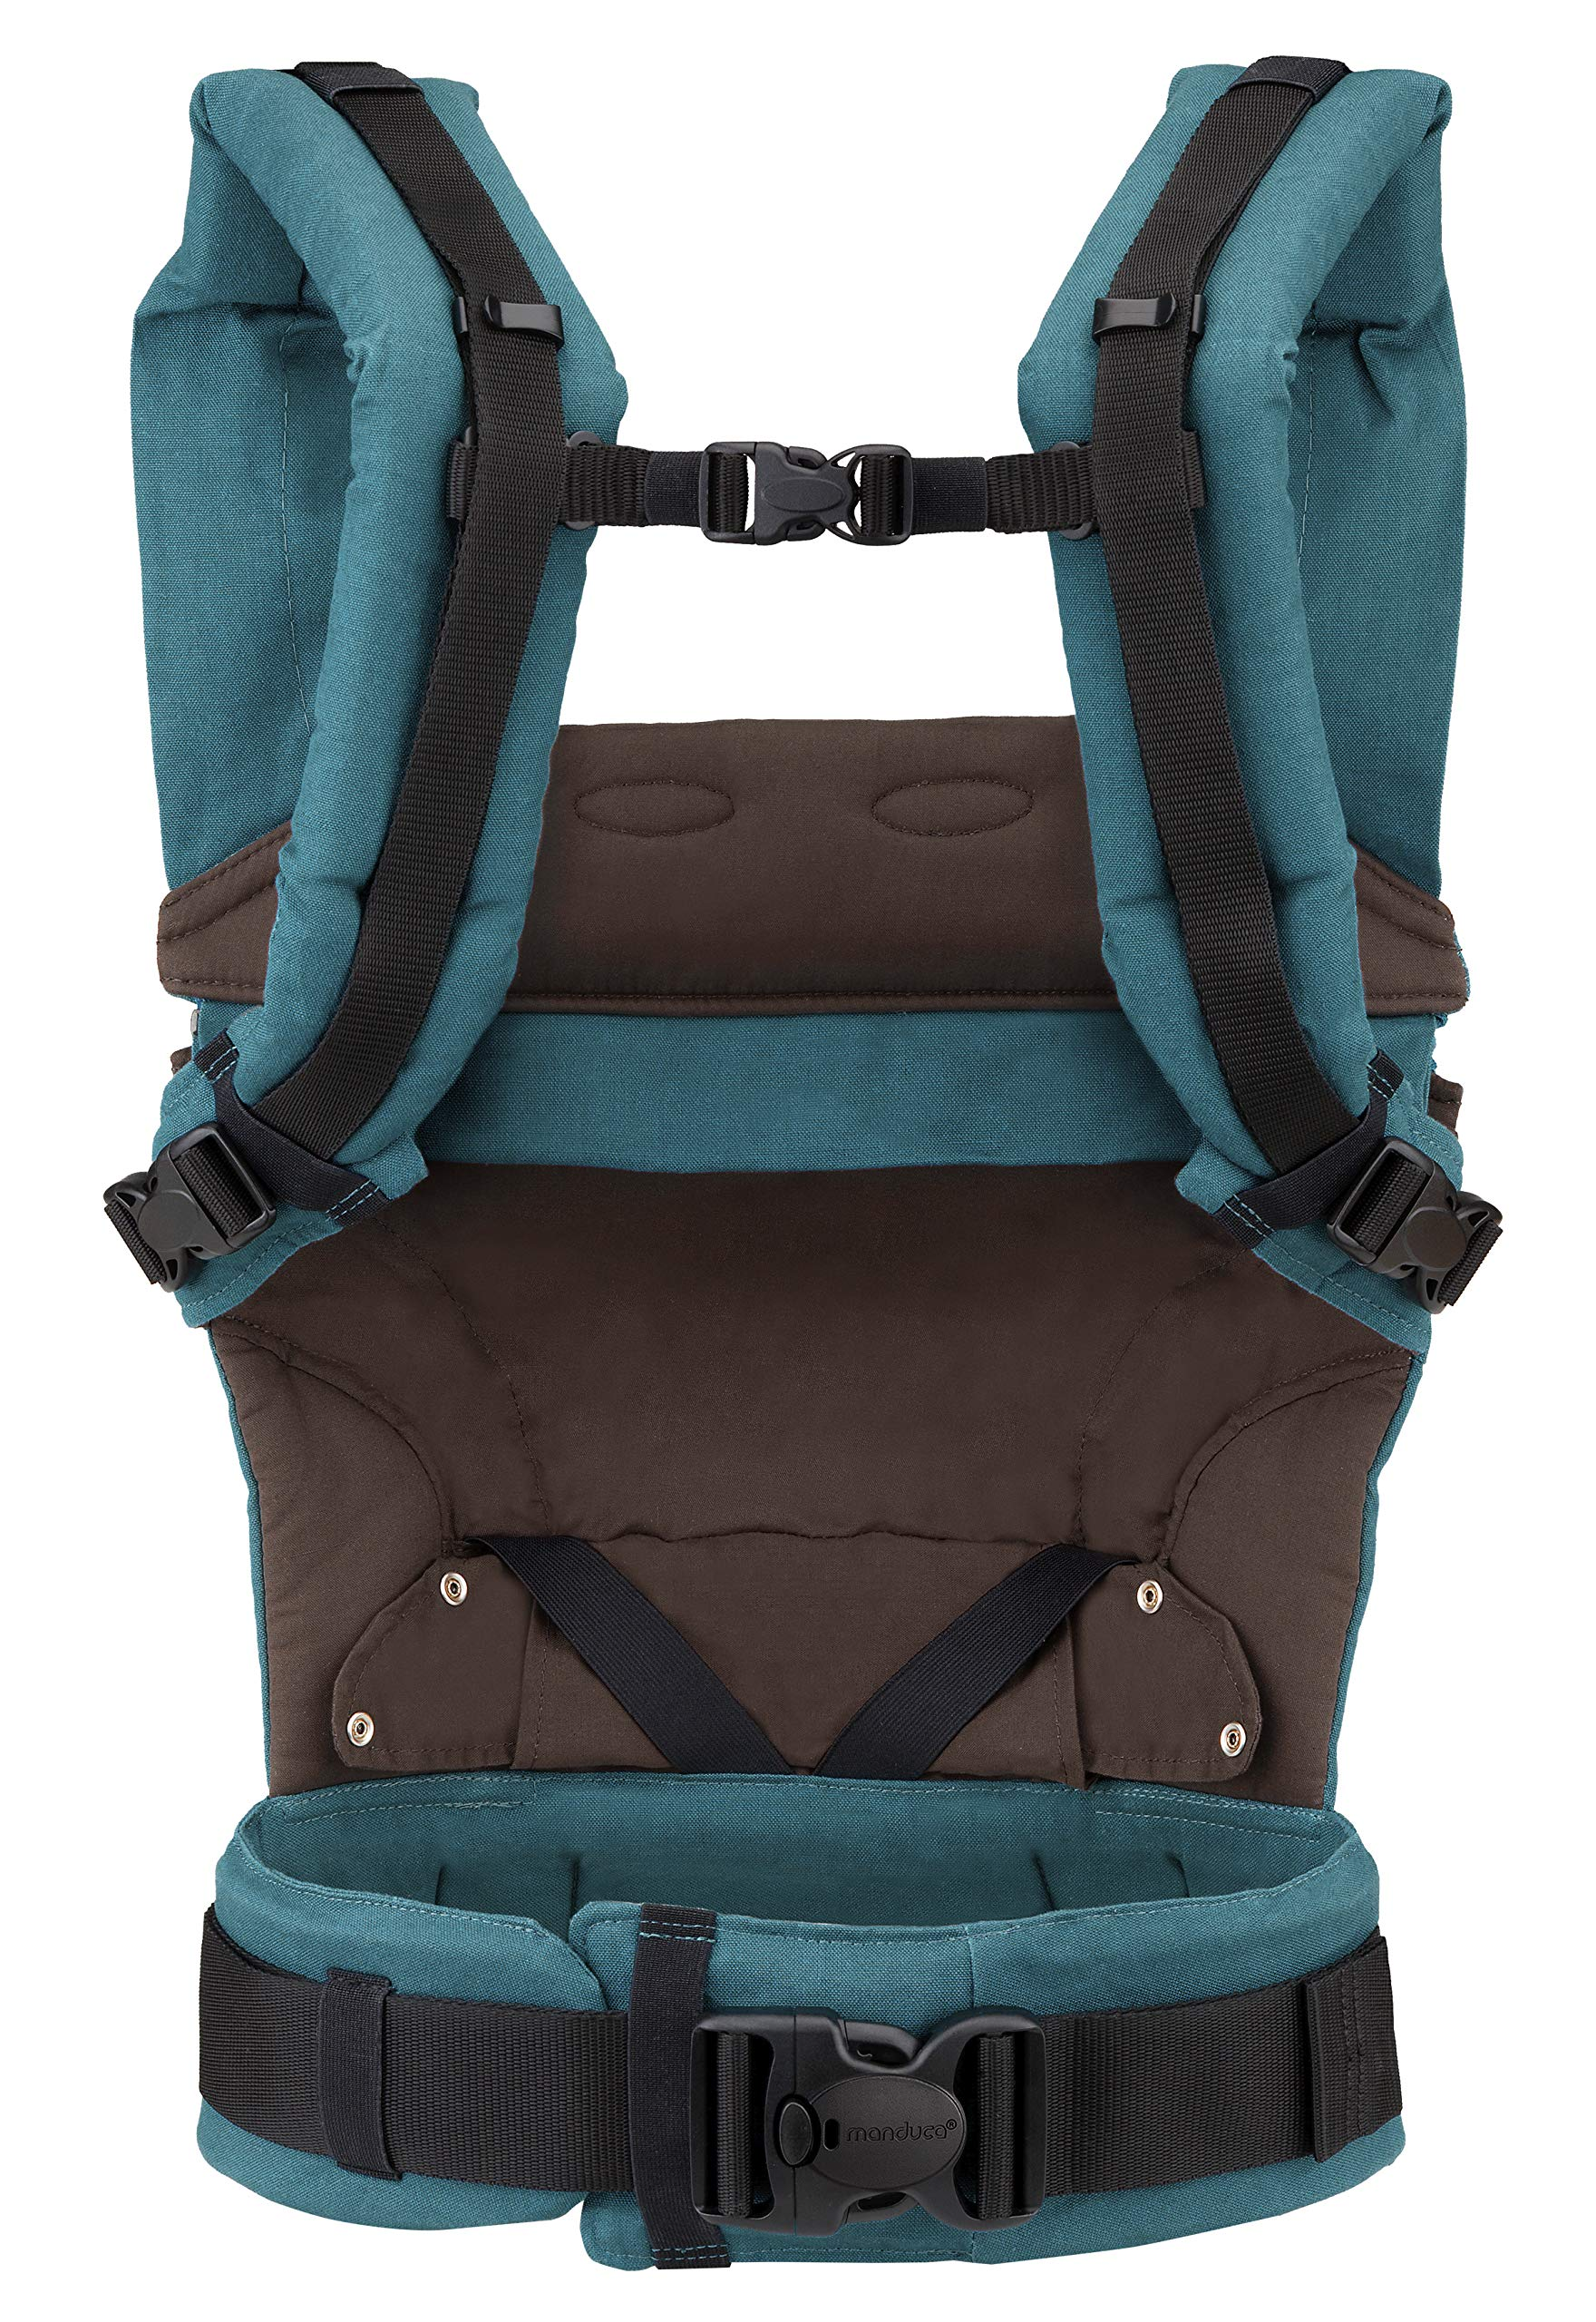 manduca First Baby Carrier > HempCotton Petrol Blue - Brown < Ergonomic Baby & Child Carrier, Soft & Sturdy Canvas (Organic Cotton & Hemp), Front, Hip & Back Carry, for Newborn to Toddlers up to 20kg Manduca manduca baby carrier First HempCotton: the original made of hemp & organic cotton with patented back extension, is already a classic. New features: Improved three-point-buckle (secure & easy to open) Integrated in every carrier: infant pouch (newborn insert), stowable headrest & sun protection for your baby, back extension (grows with your child); Optional accessories for newborns: Size-It (seat reducer) and Zip-In Ellipse Ergonomic design for men & women: Soft padded shoulder straps (multiple adjustable) & the anatomically shaped stable hipbelt (fits hips from 64cm to 140cm) ensure balanced weight distribution. No waist-belt extension needed 4